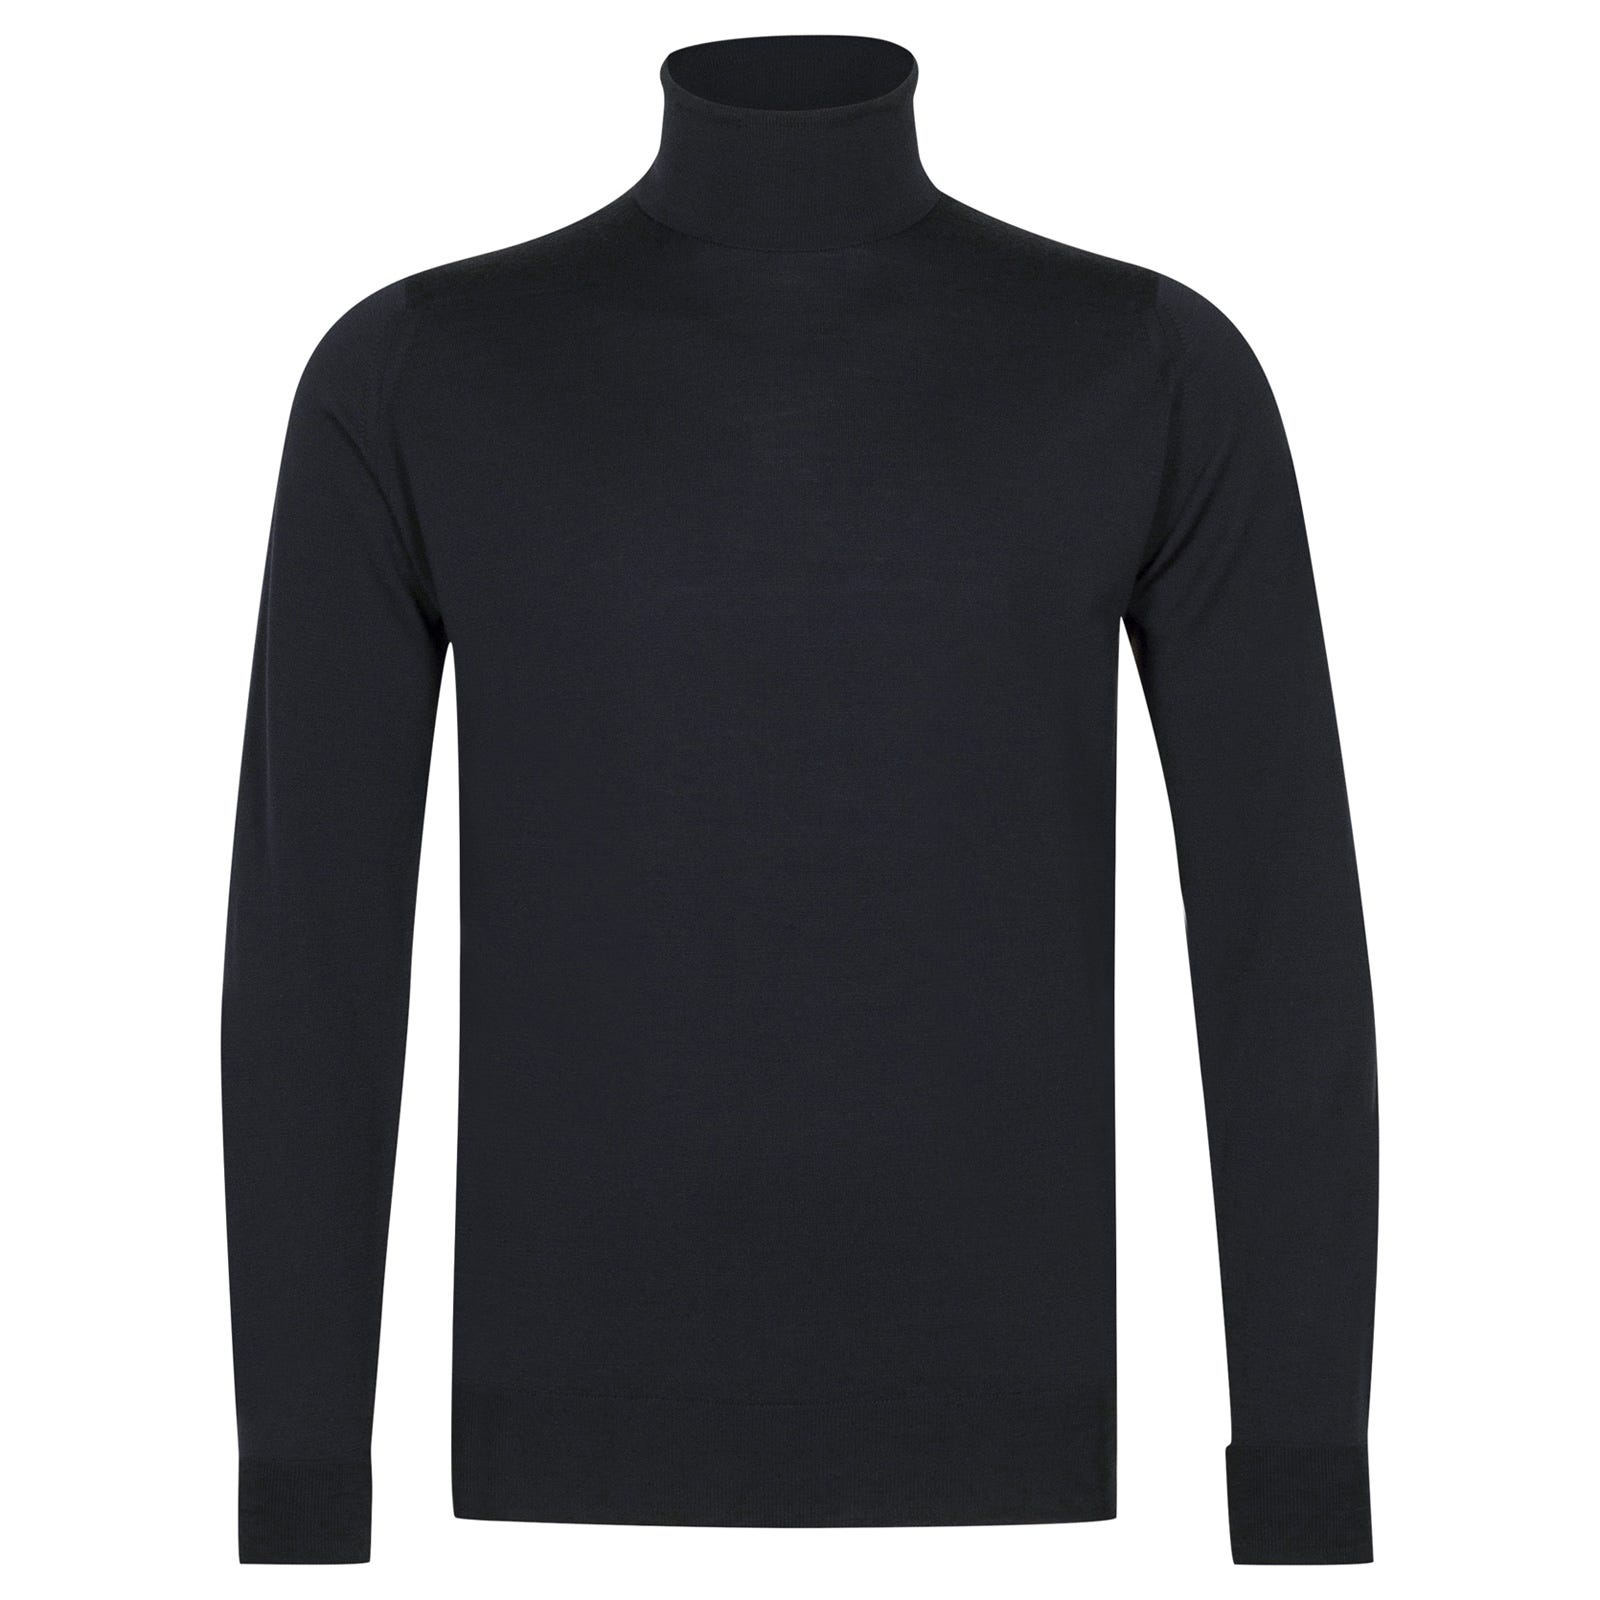 John Smedley richards Merino Wool Pullover in Midnight-L